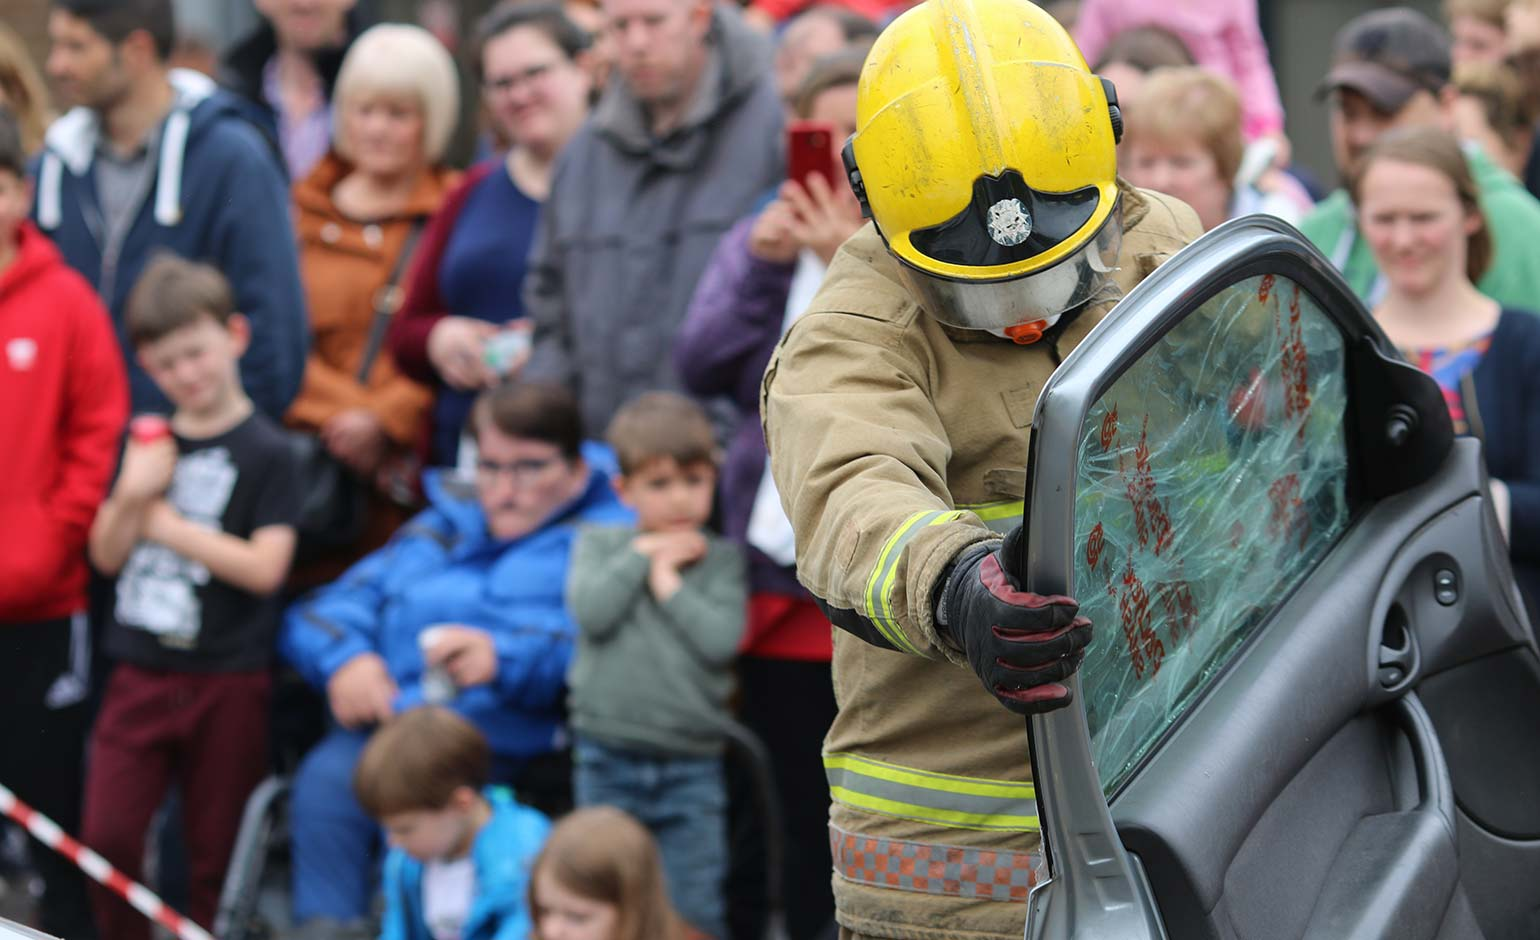 Avon Fire & Rescue to highlight capabilities and dangers at public rescue day | Bath Echo